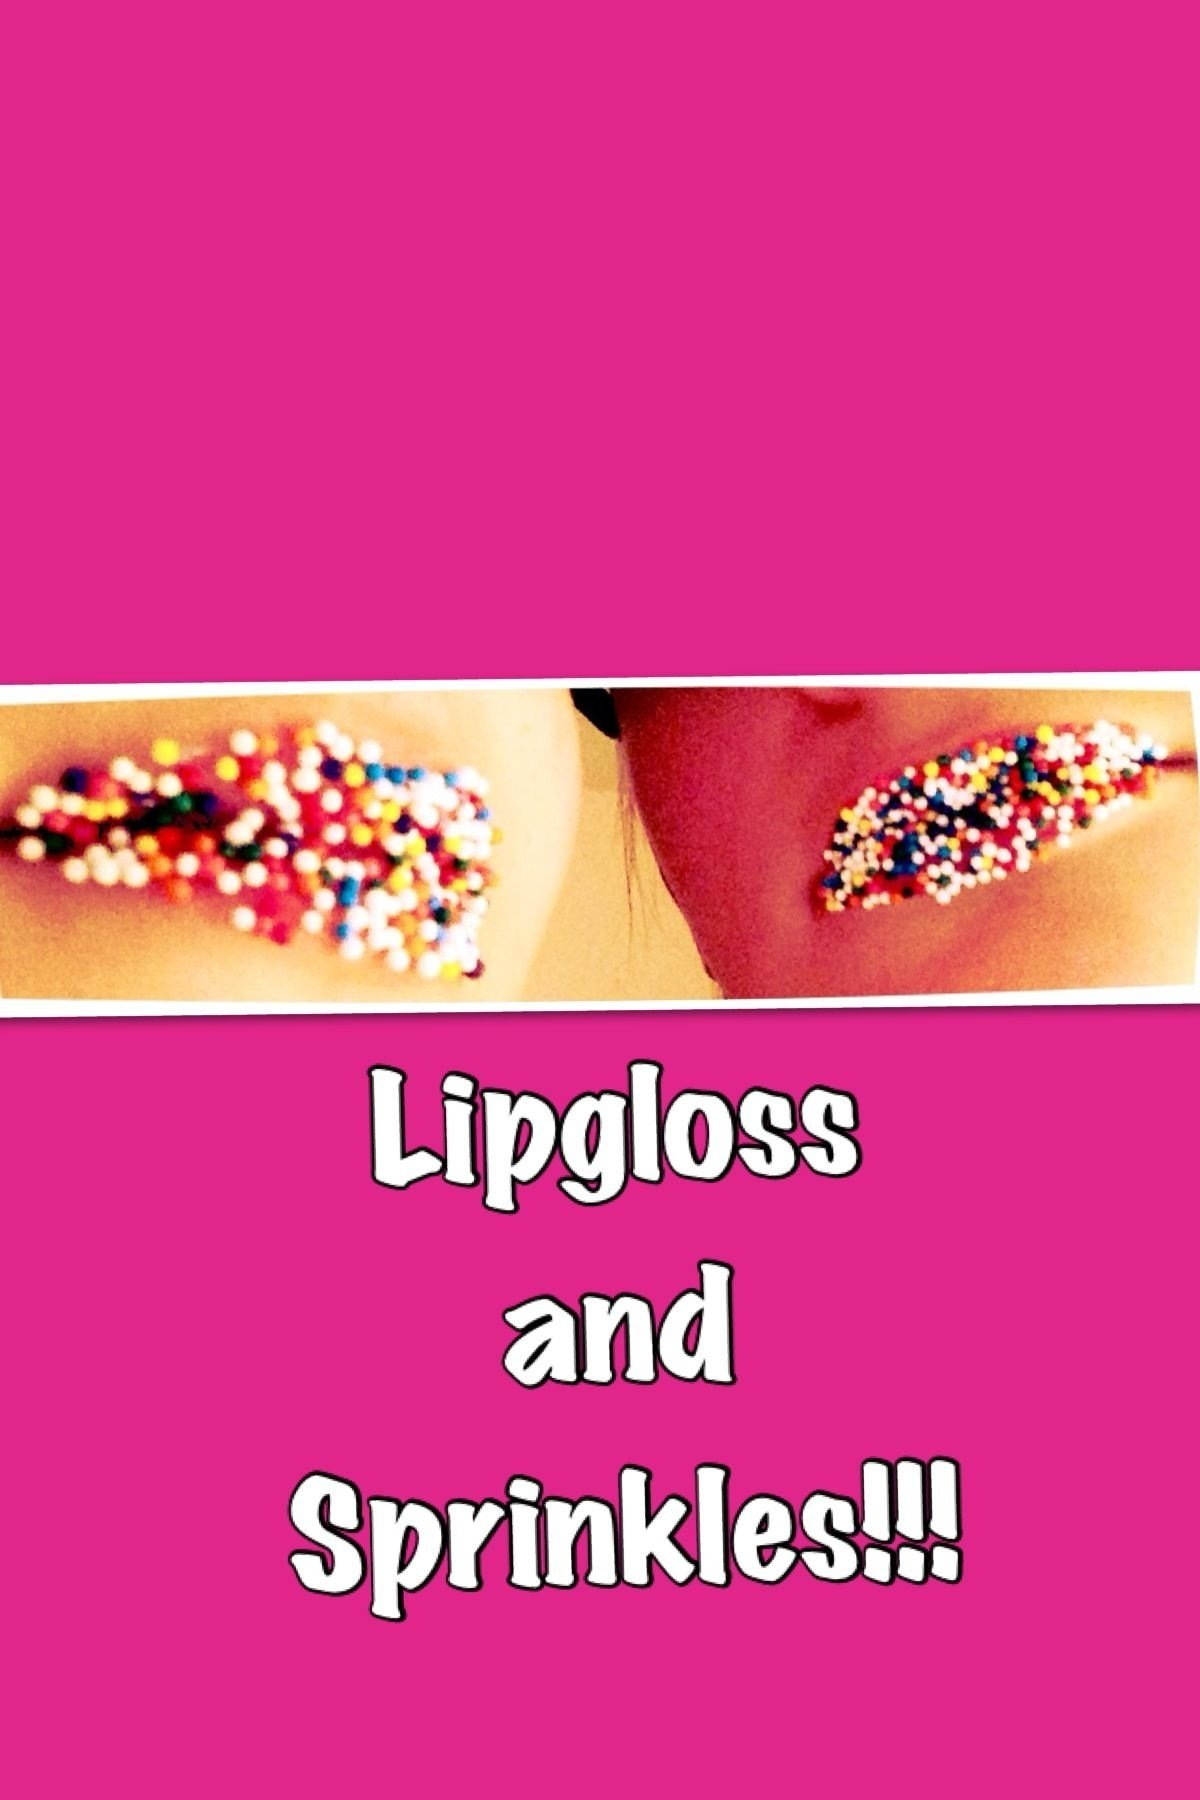 10 Fashionable Fun Ideas To Do With Friends fun activity to do with friends at sleepovers lipgloss and 1